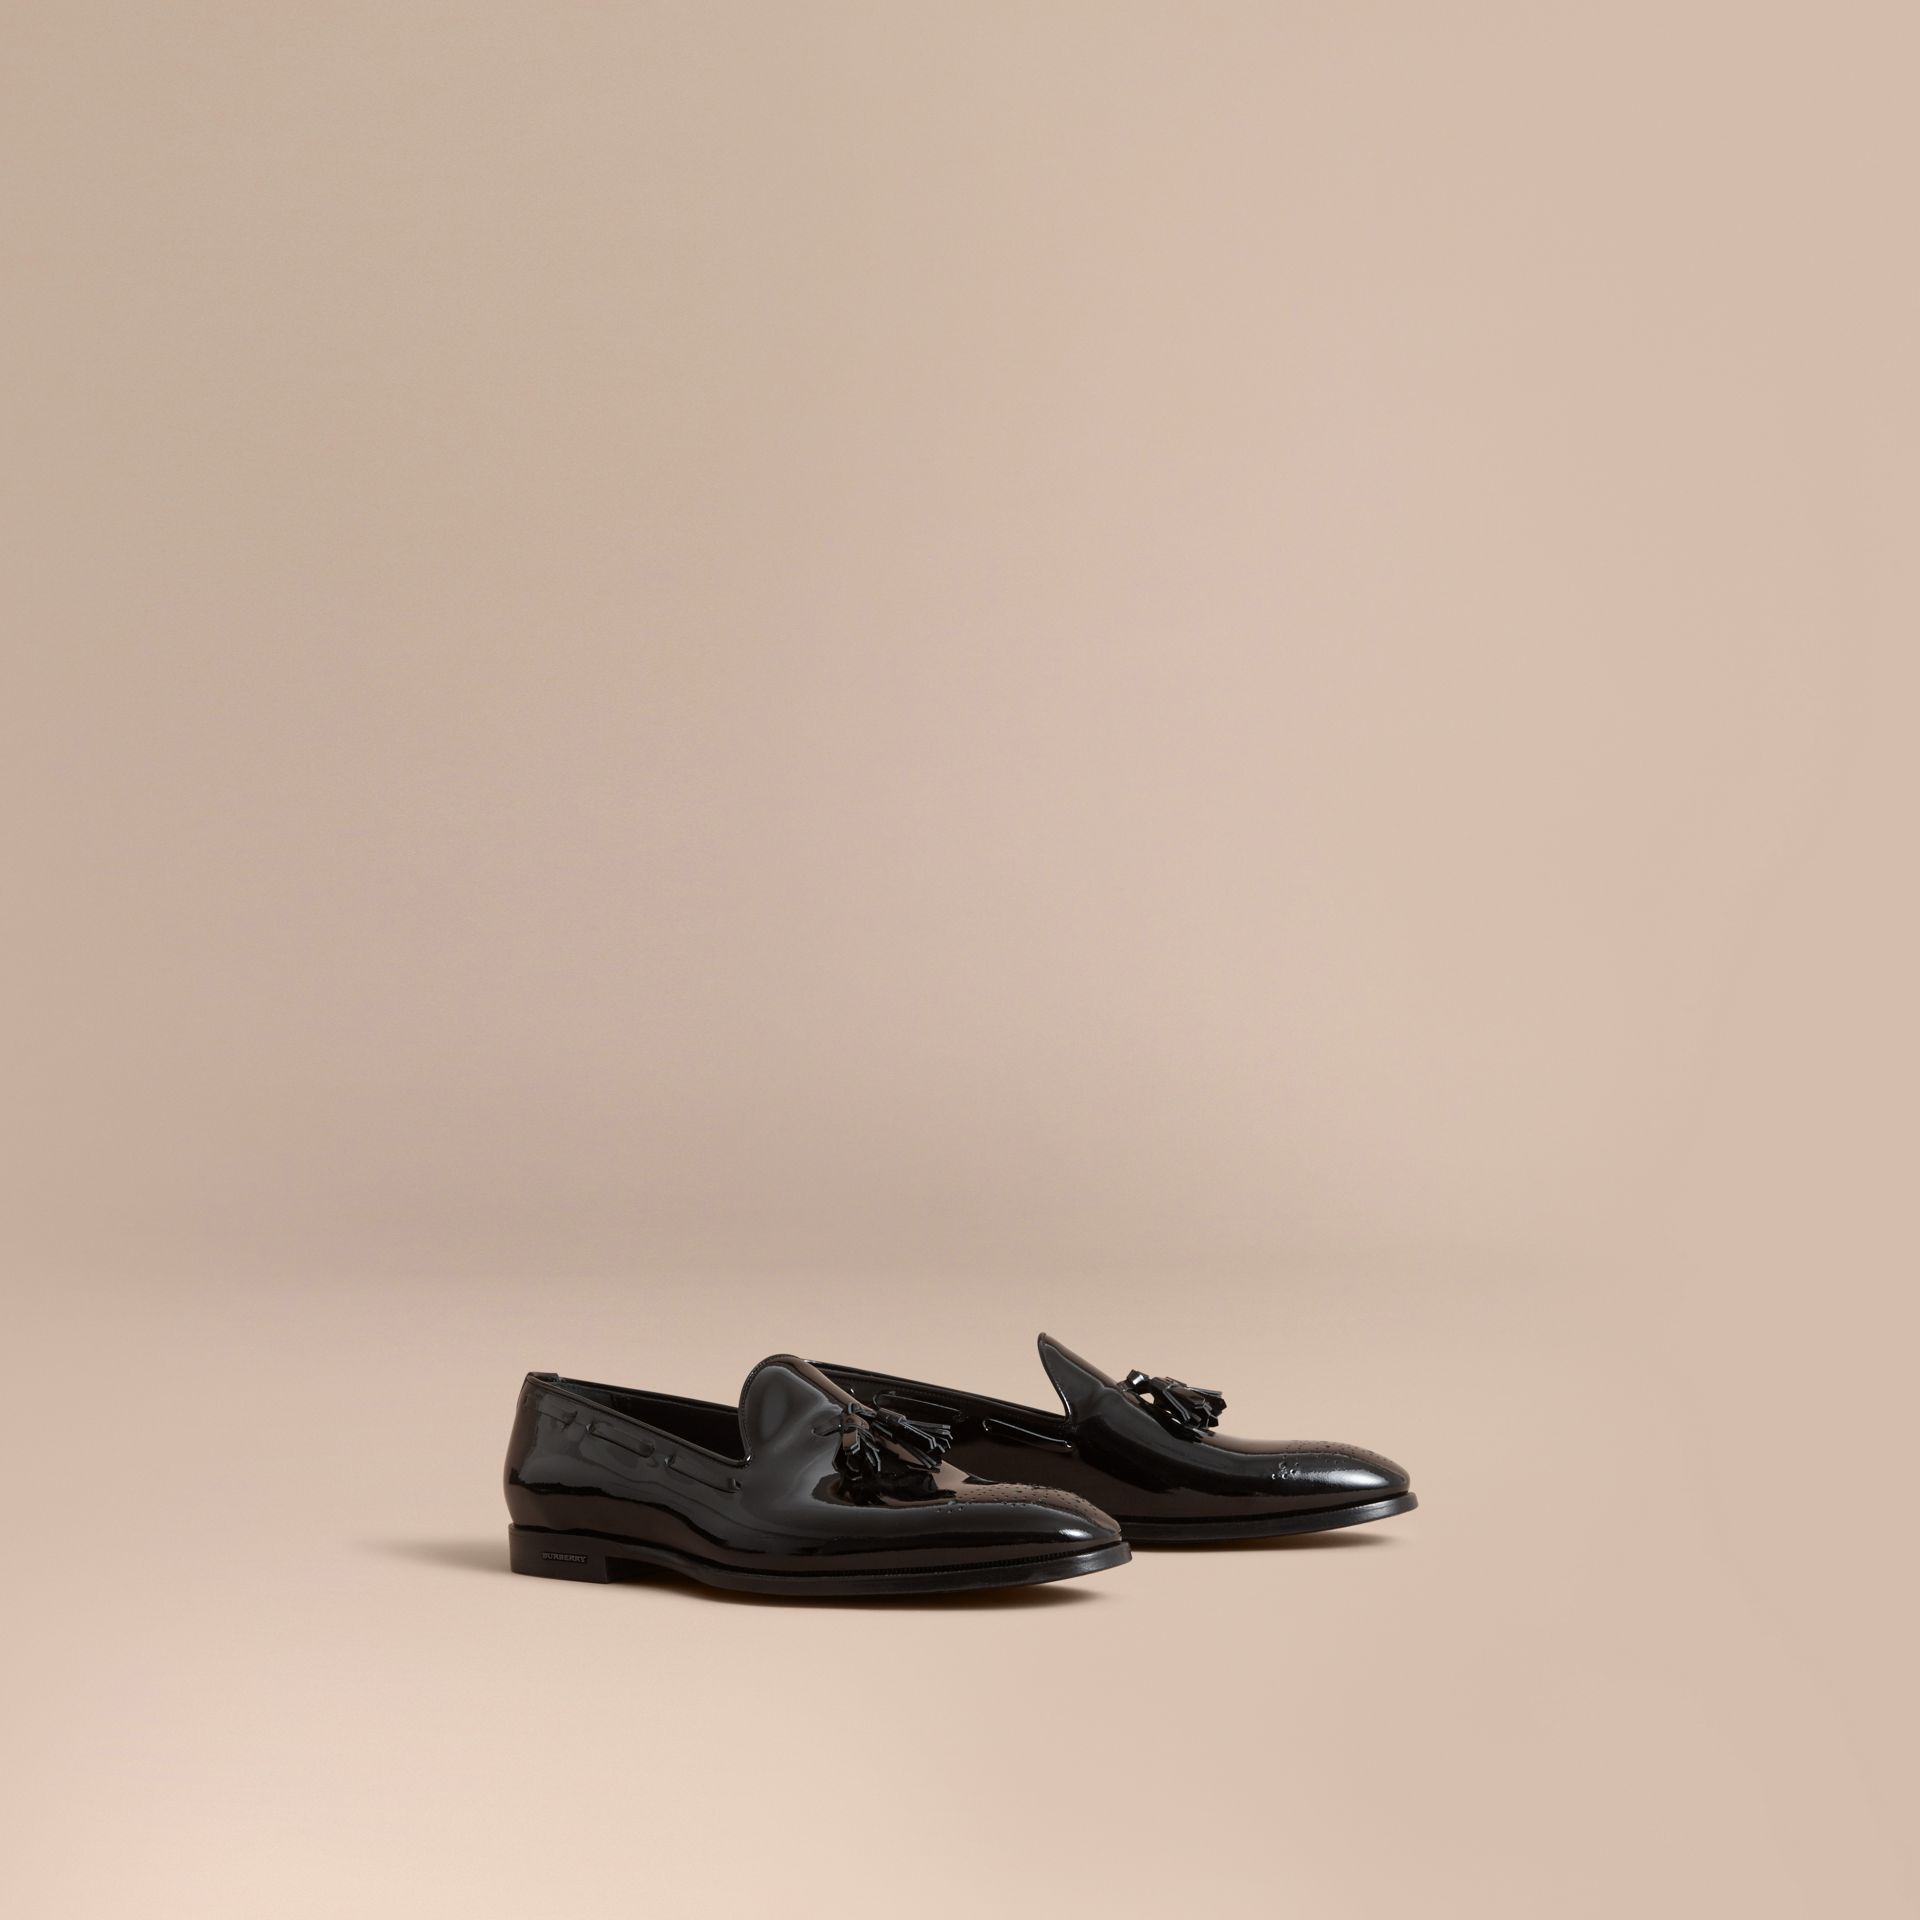 Tasselled Patent Leather Loafers in Black - Men | Burberry Canada - gallery image 0